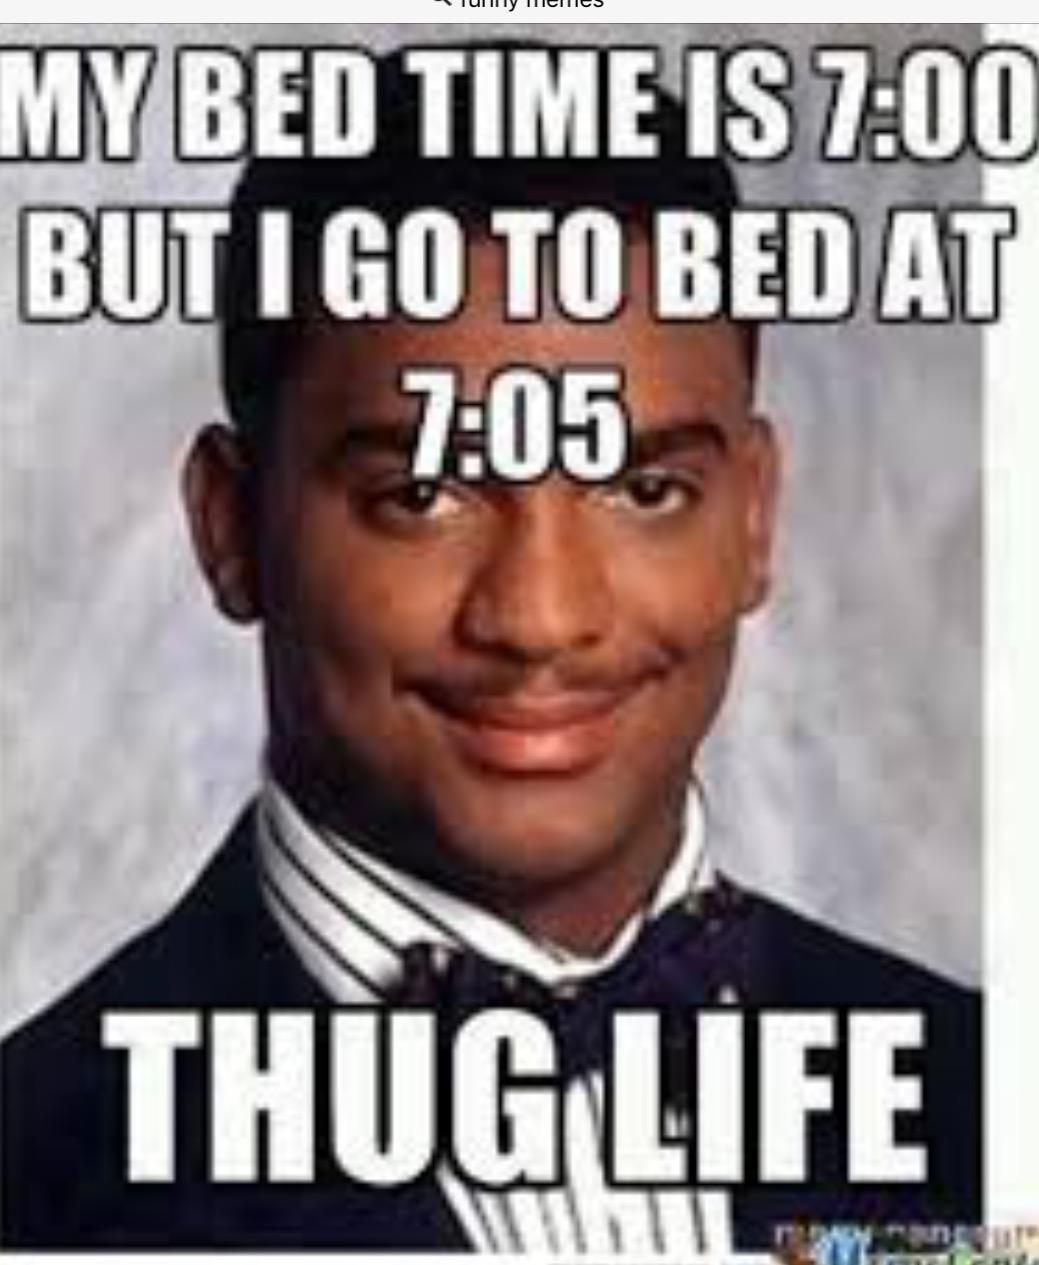 My bed time is 7:00 but I go to bed at 7:05, THUG LIFE